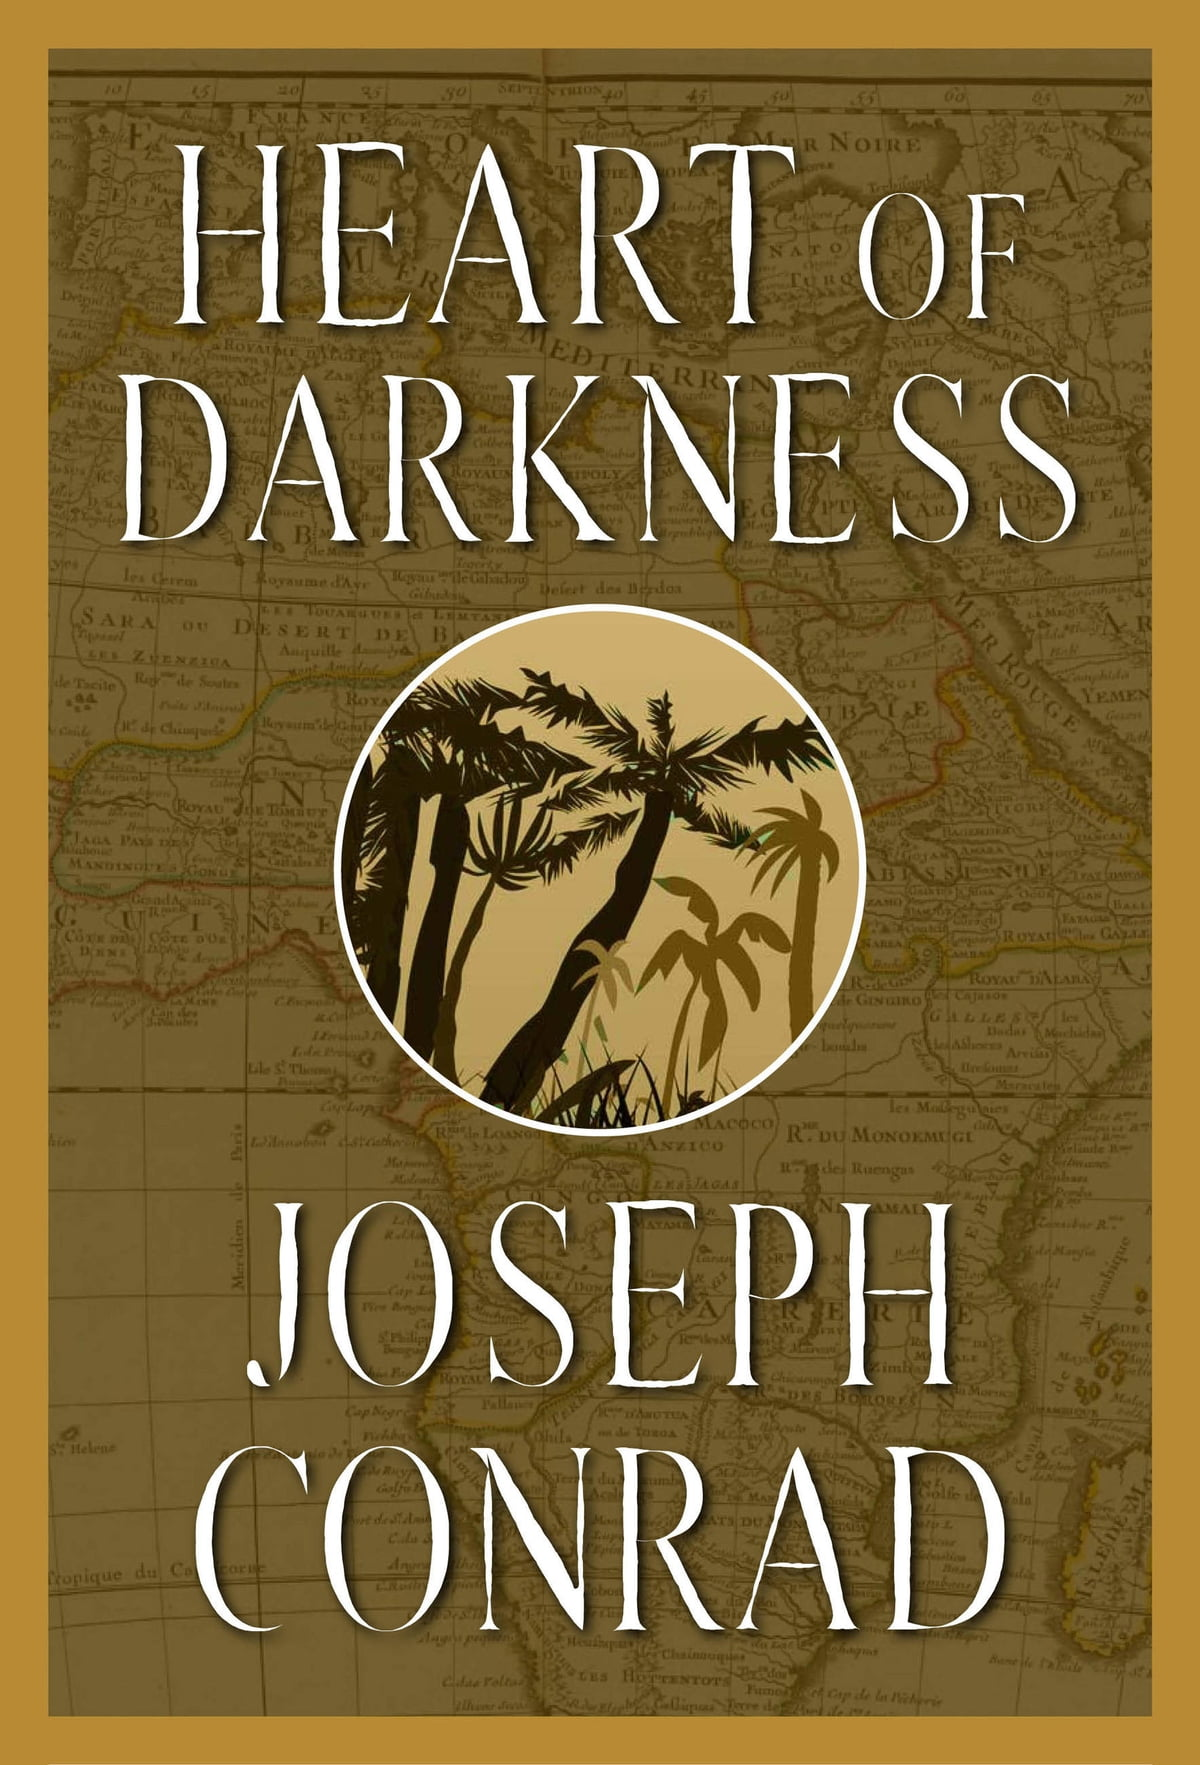 an analysis of the novel heart of darkness by joseph conrad Joseph conrad's heart of darkness is about a journey into the congo at the height of colonialism in the nineteenth century it's a controversial book, to say the and the literature of the time reflected this obsession with exploration and colonialism, as we can see in the passage from conrad's novel above.